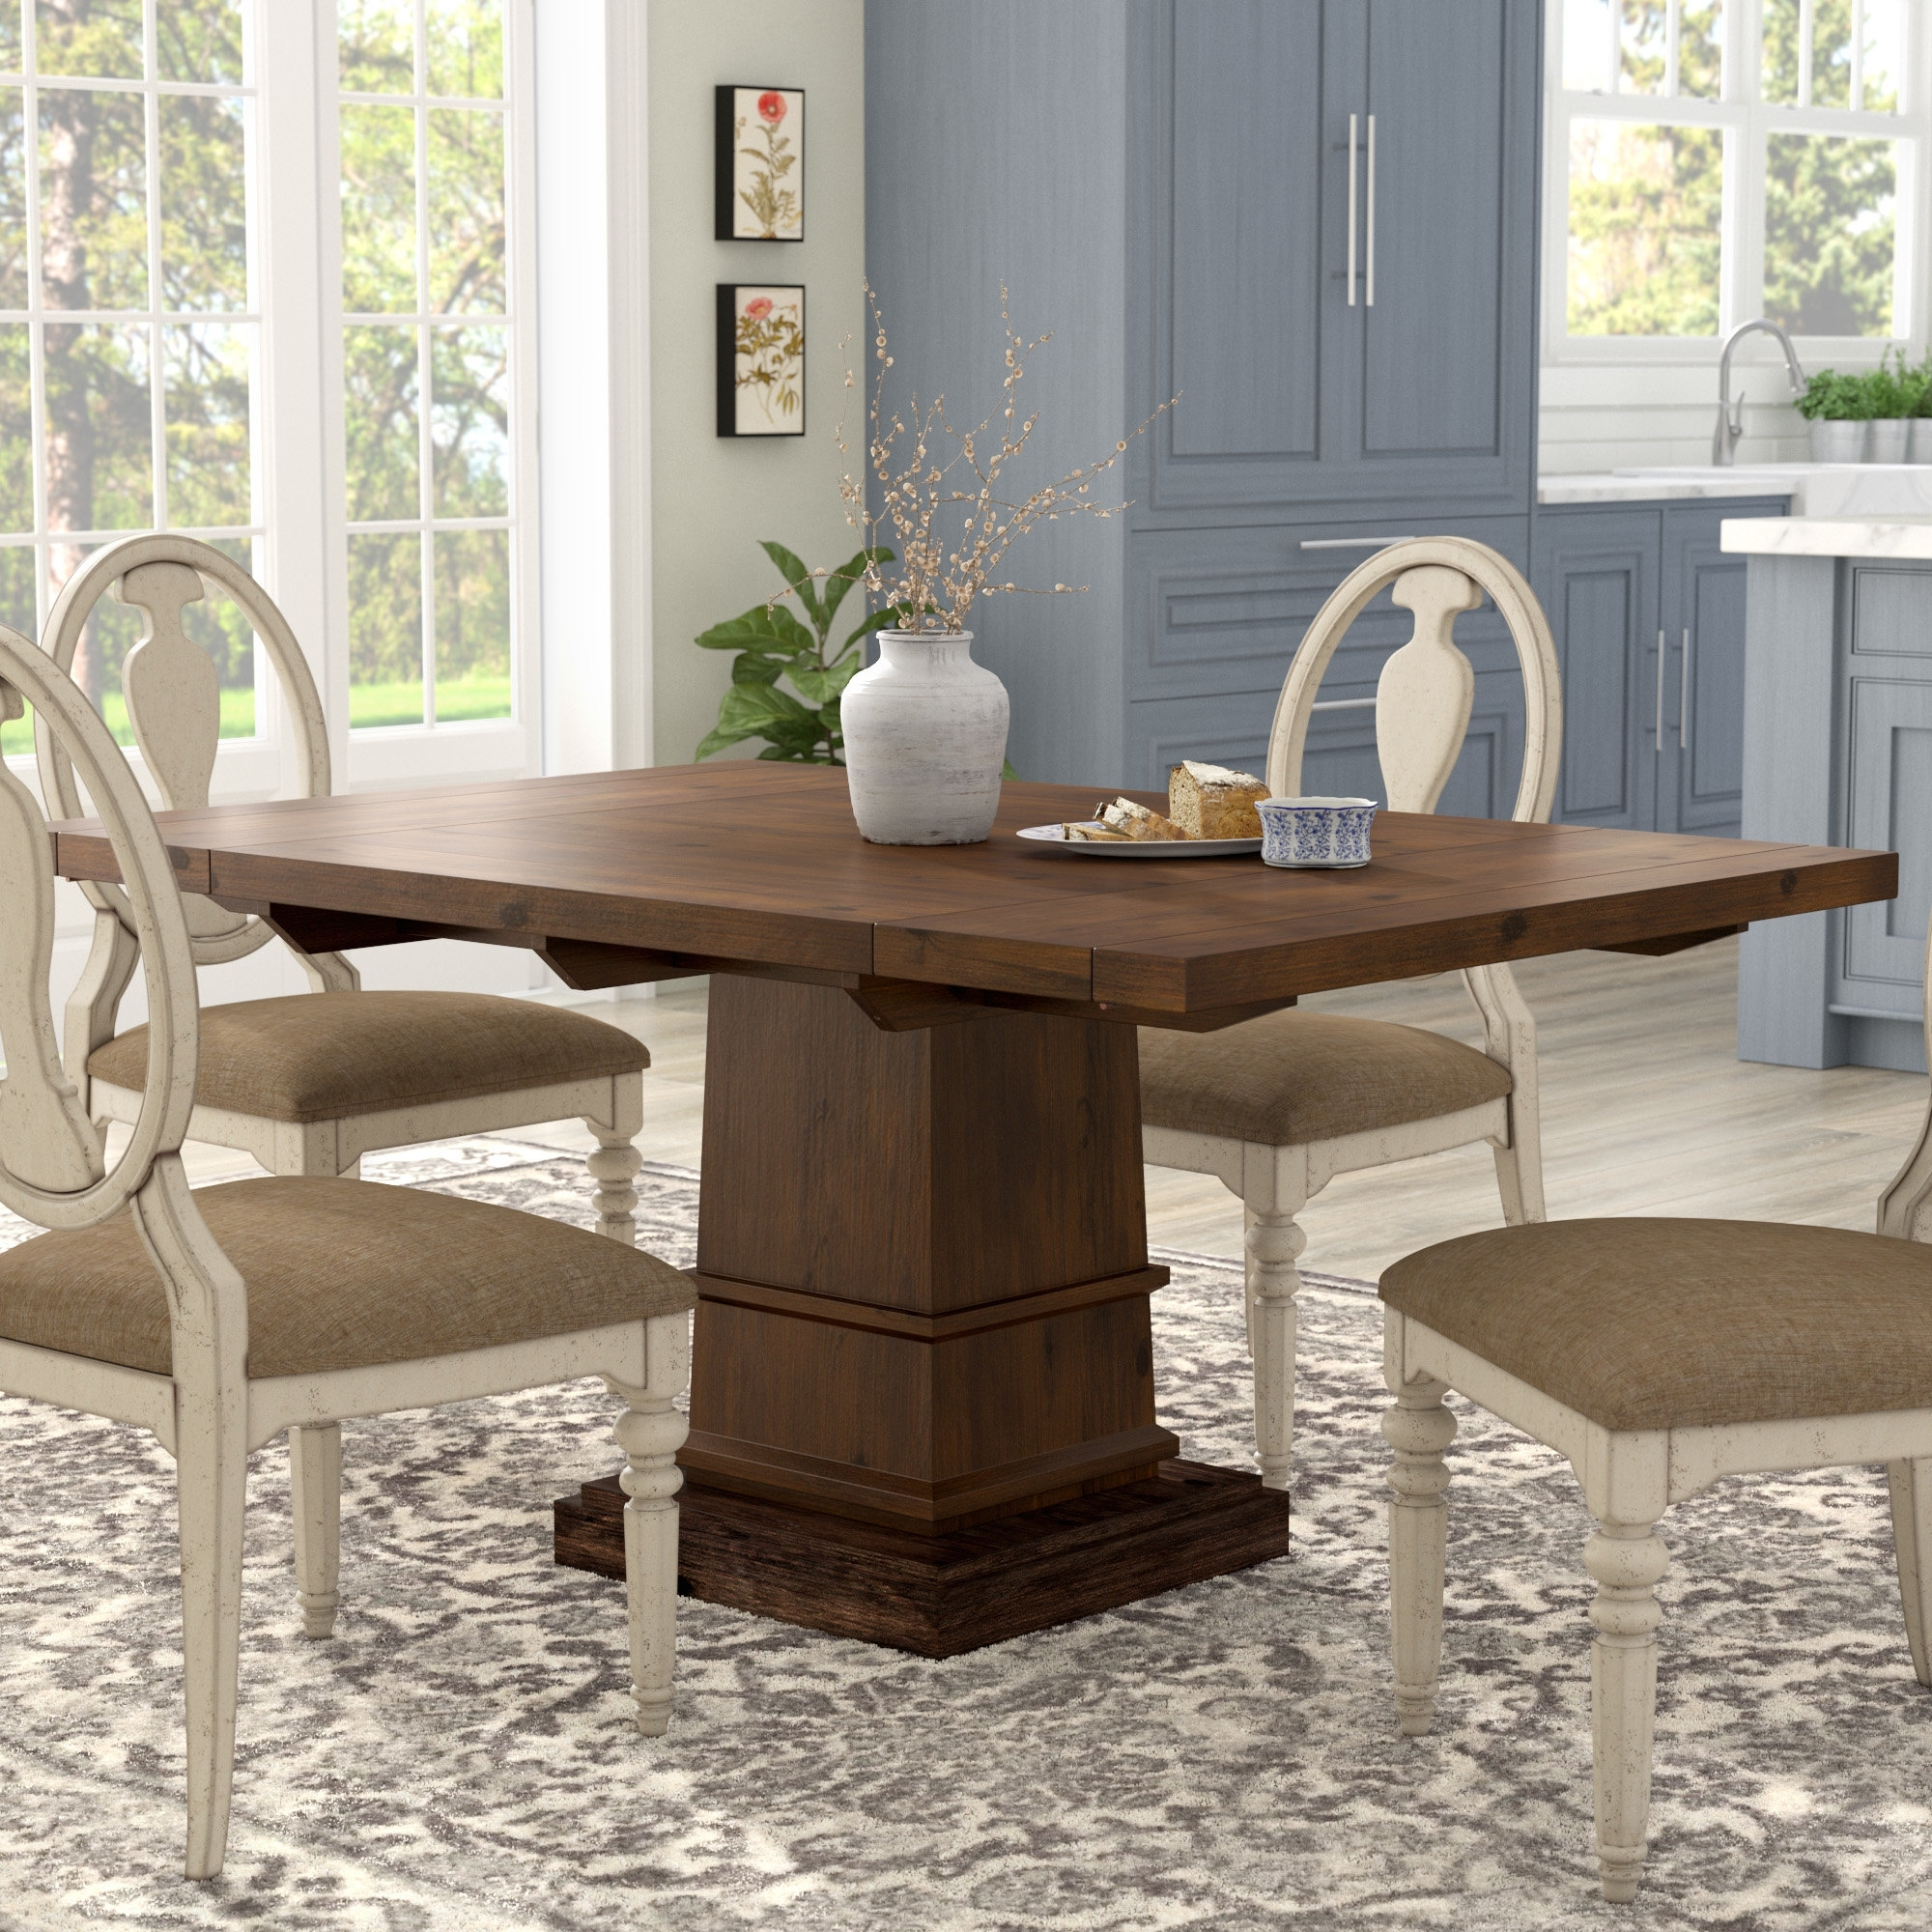 Lark Manor Parfondeval Extendable Dining Table & Reviews | Wayfair Pertaining To Recent Amos 6 Piece Extension Dining Sets (Image 18 of 20)